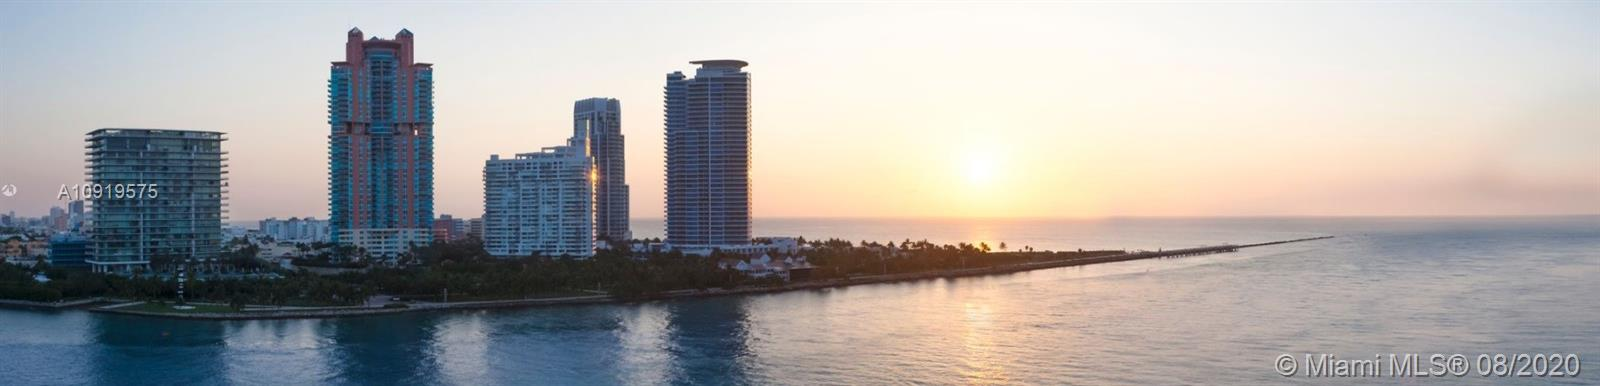 6895 Fisher Island Dr #6895 Property Photo